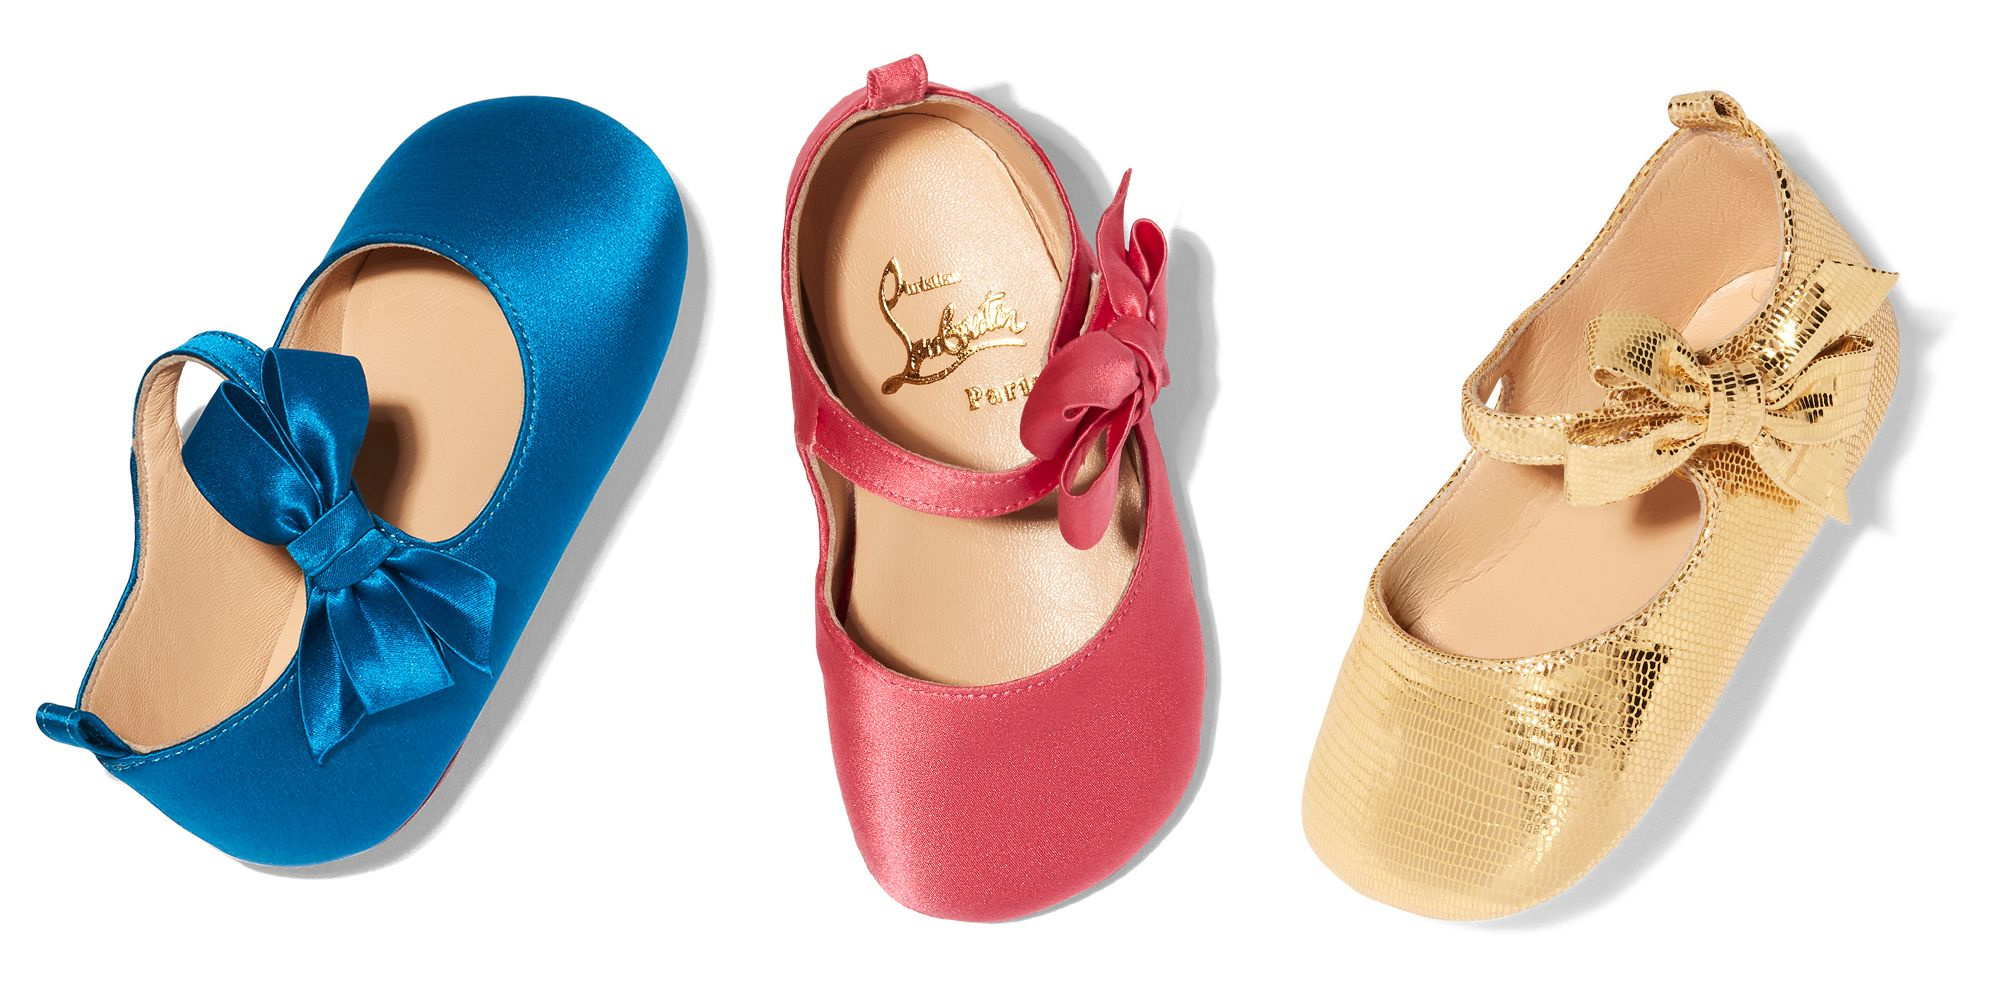 Louboutin baby shoes, Goop